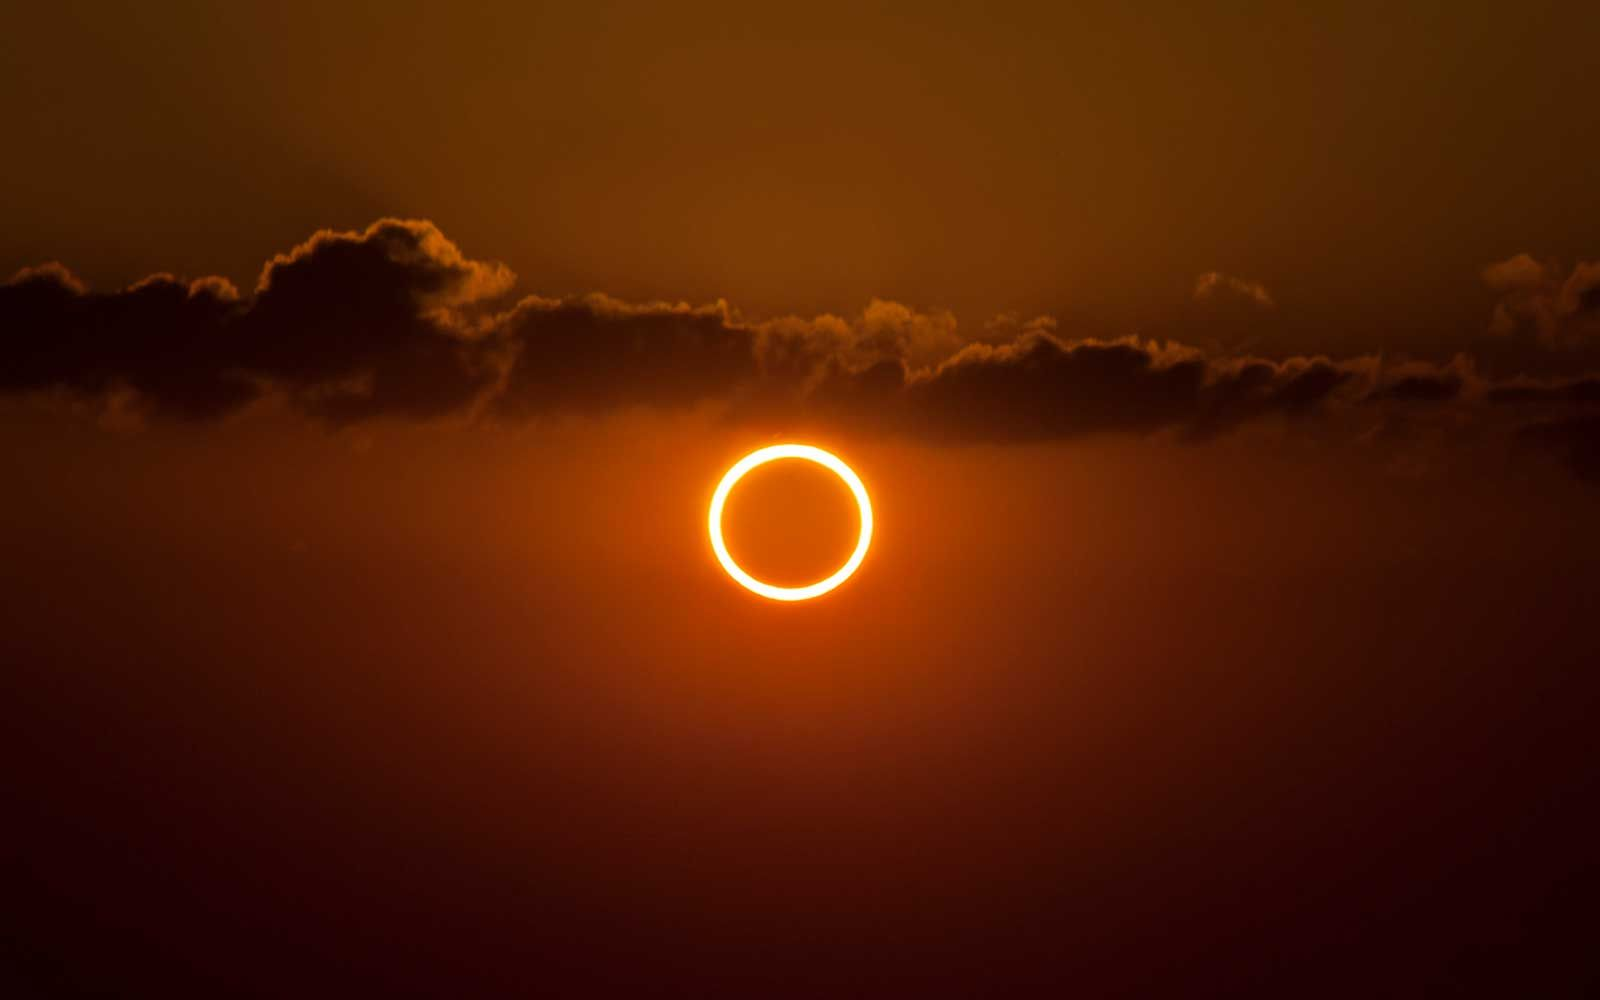 A Rare Solstice Ring Of Fire Solar Eclipse Will Happen On June